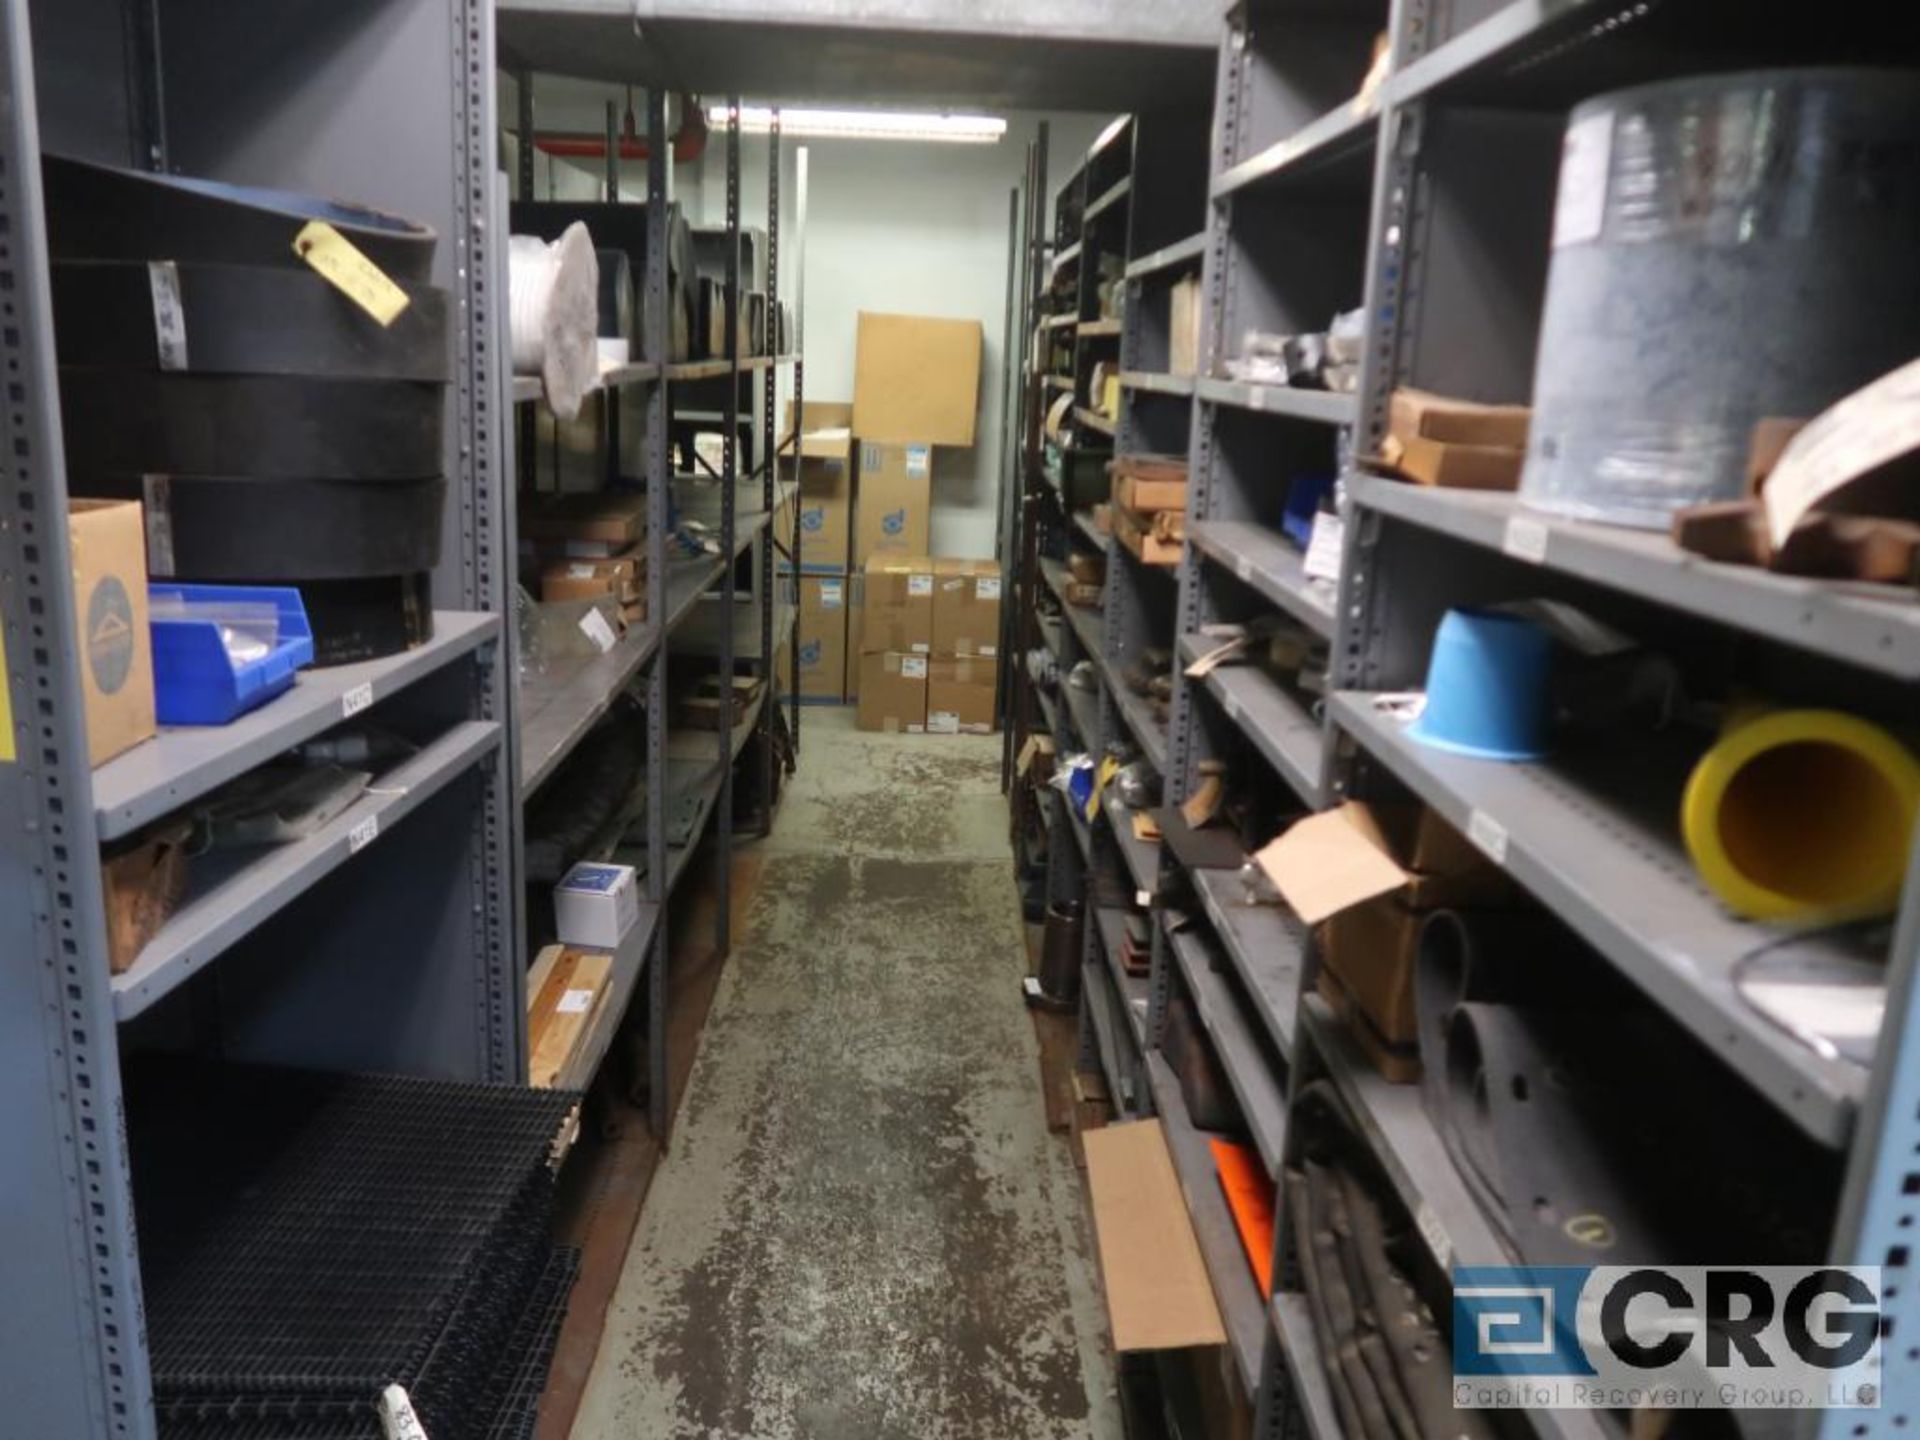 Lot of (35) sections with assorted parts including gaskets, fittings, shaft pins, gears, and